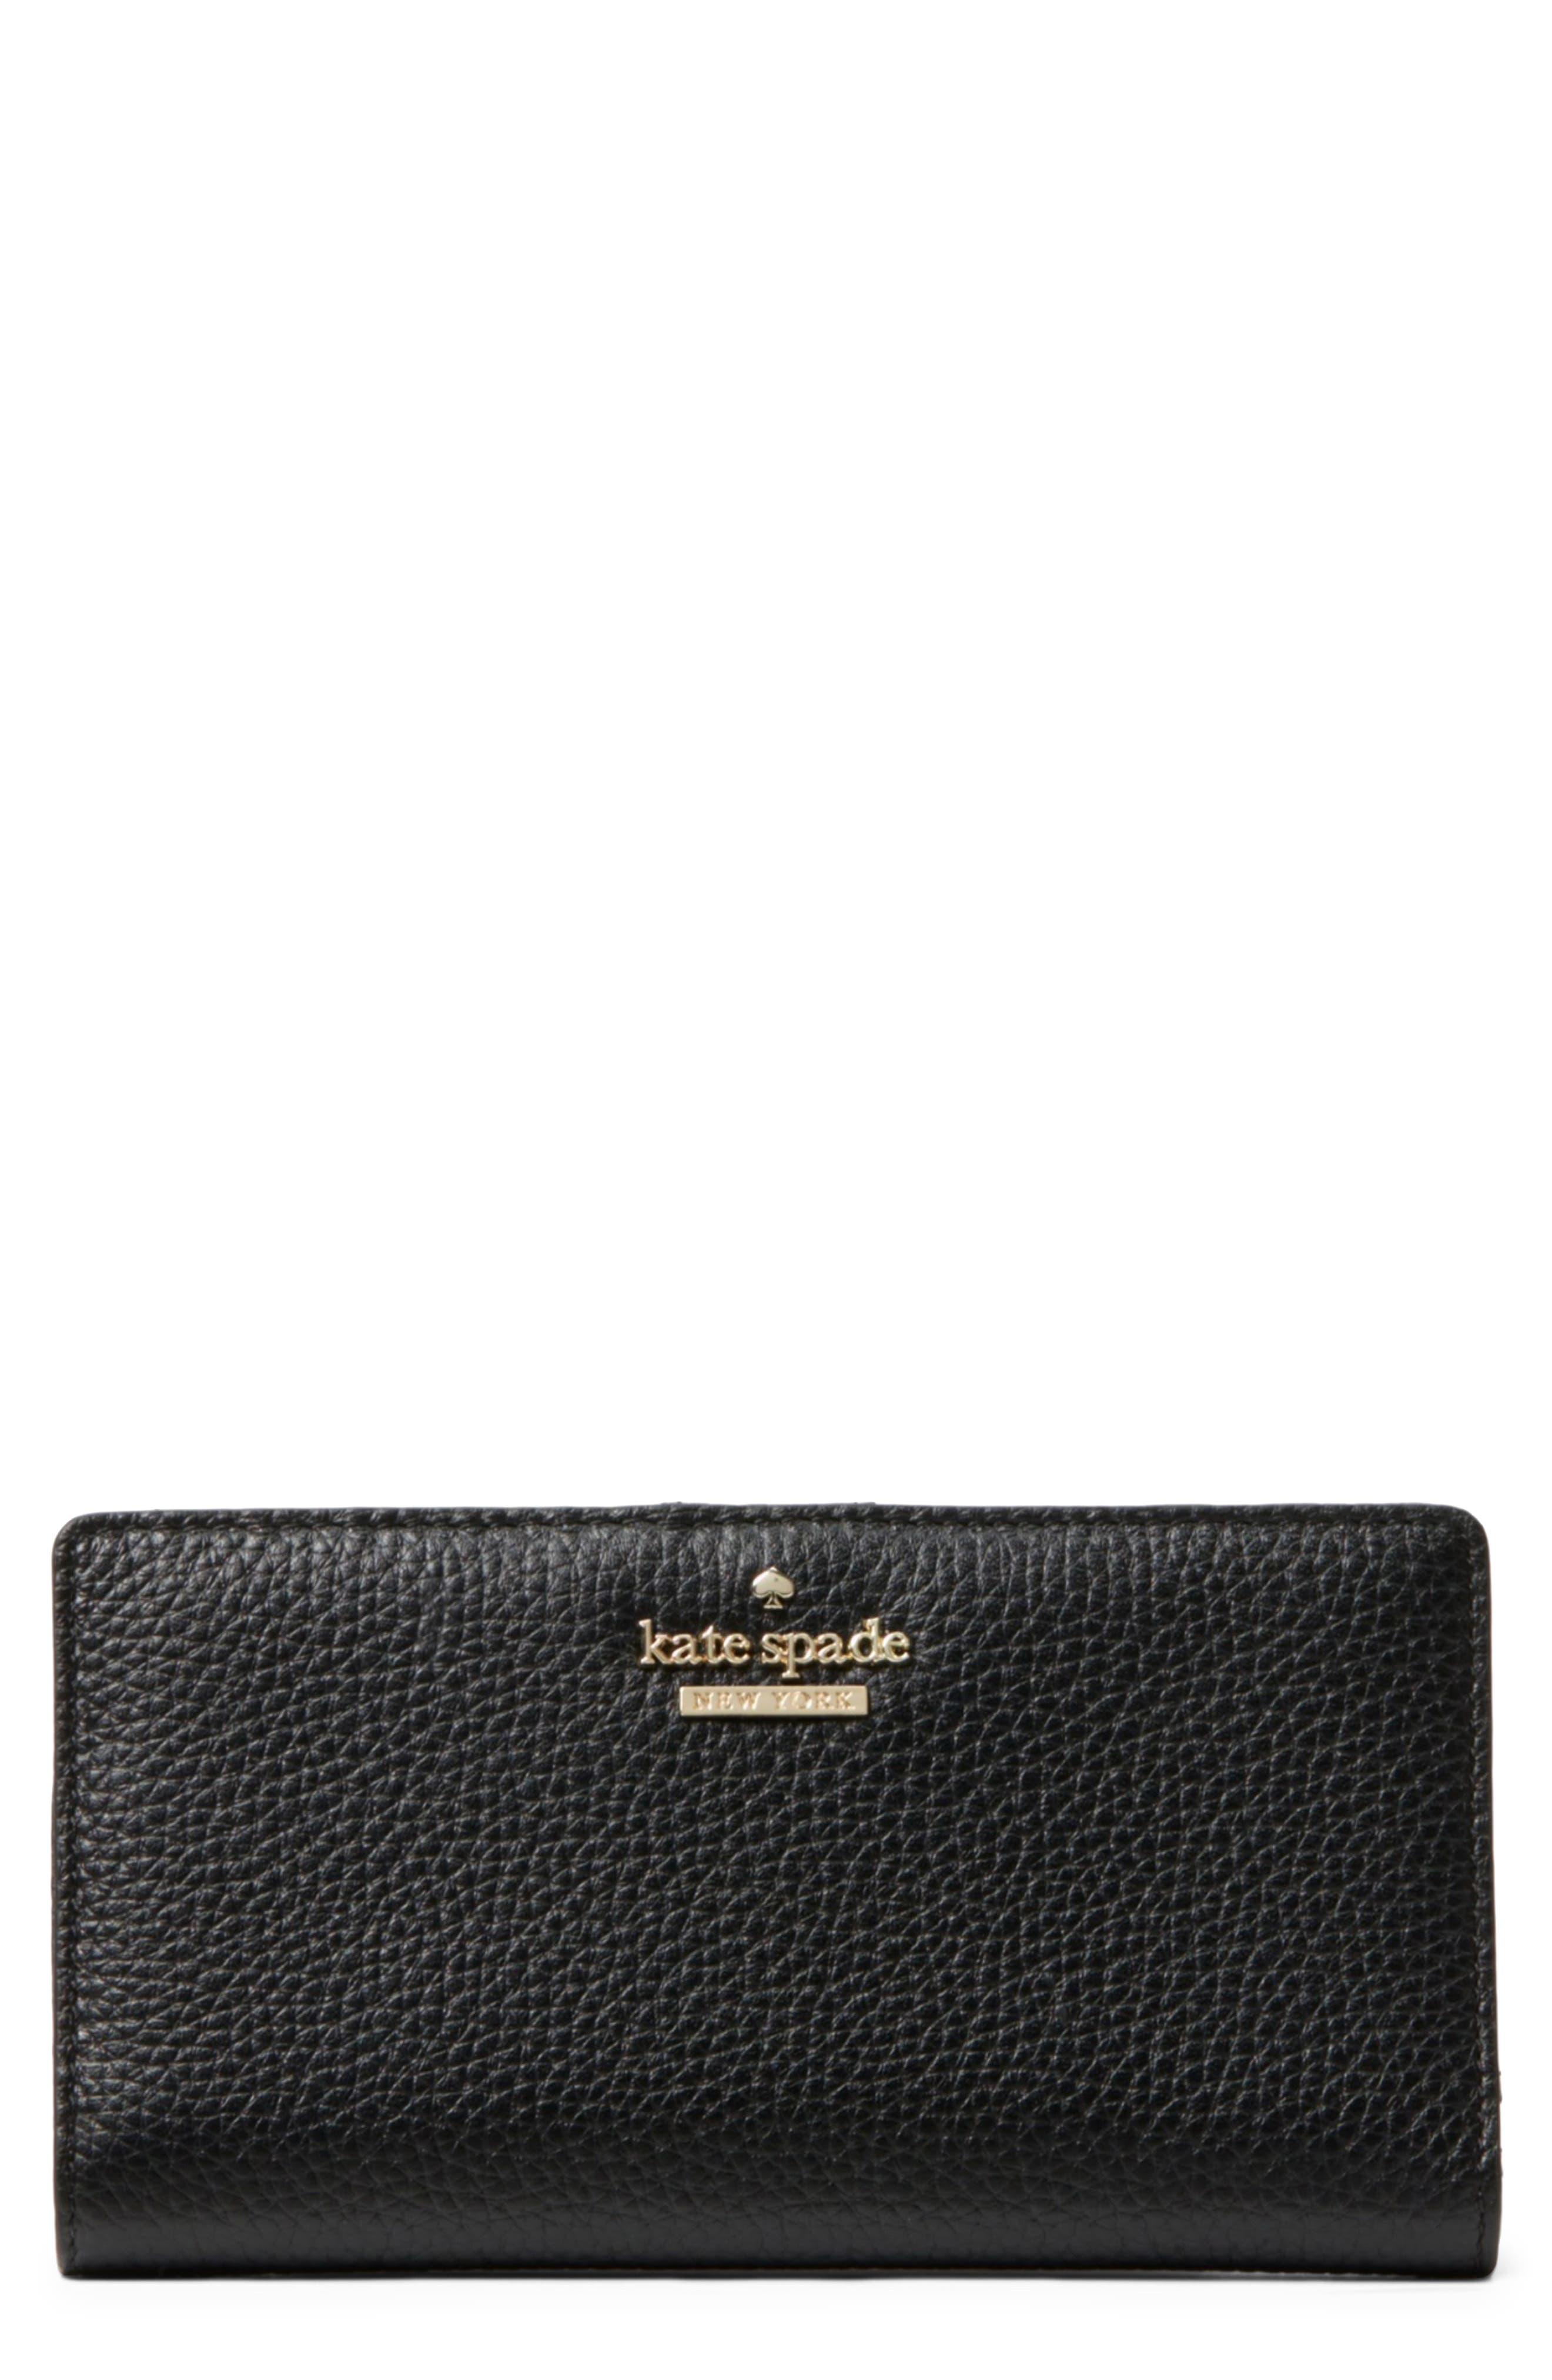 jackson street stacy leather wallet,                         Main,                         color, 001